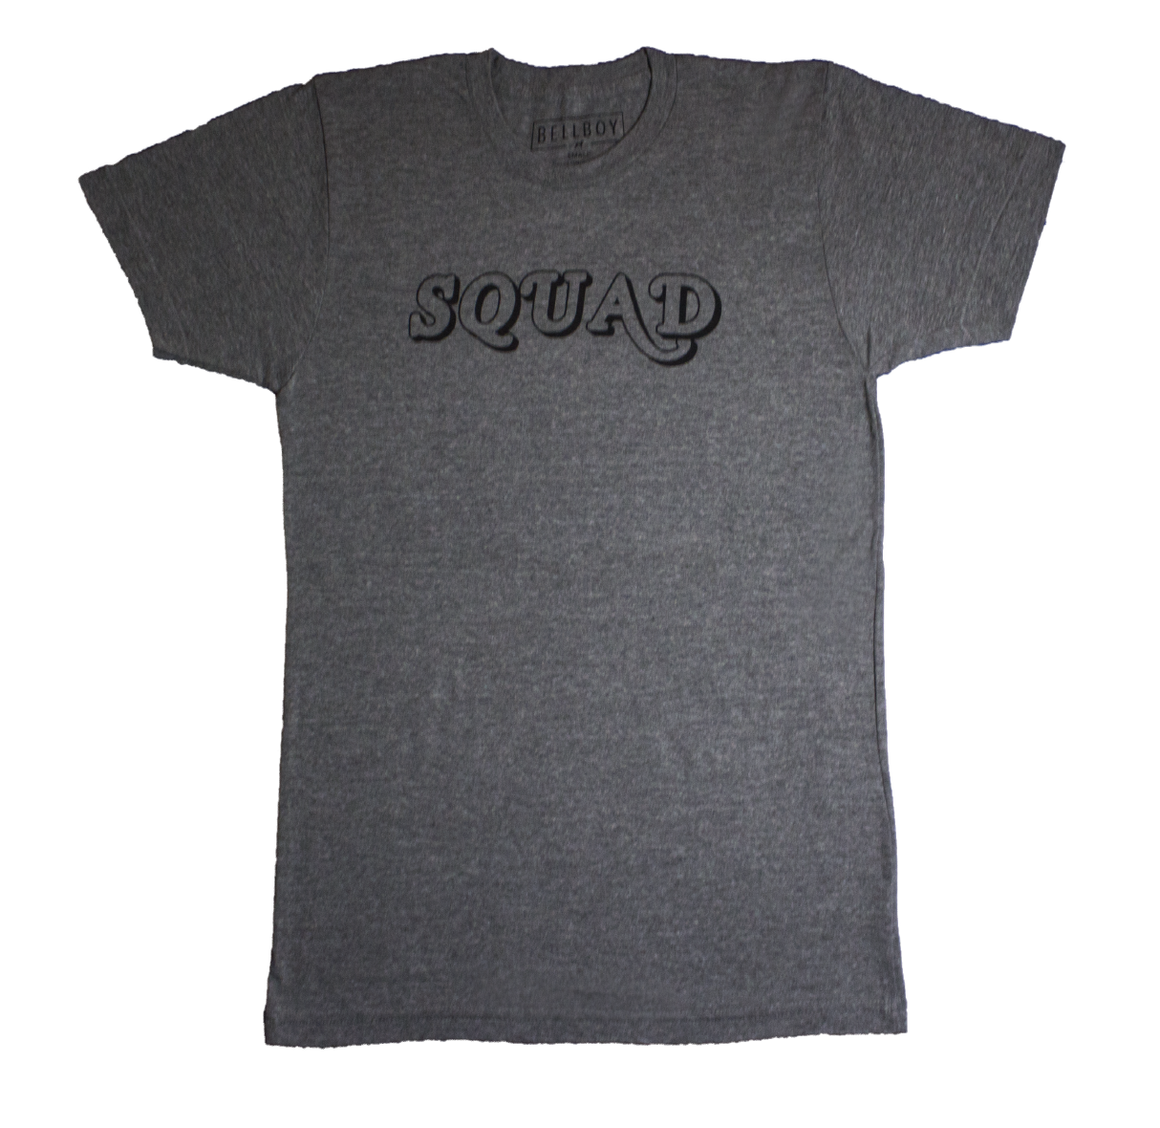 BELLBOY | SQUAD T-SHIRT - GREY